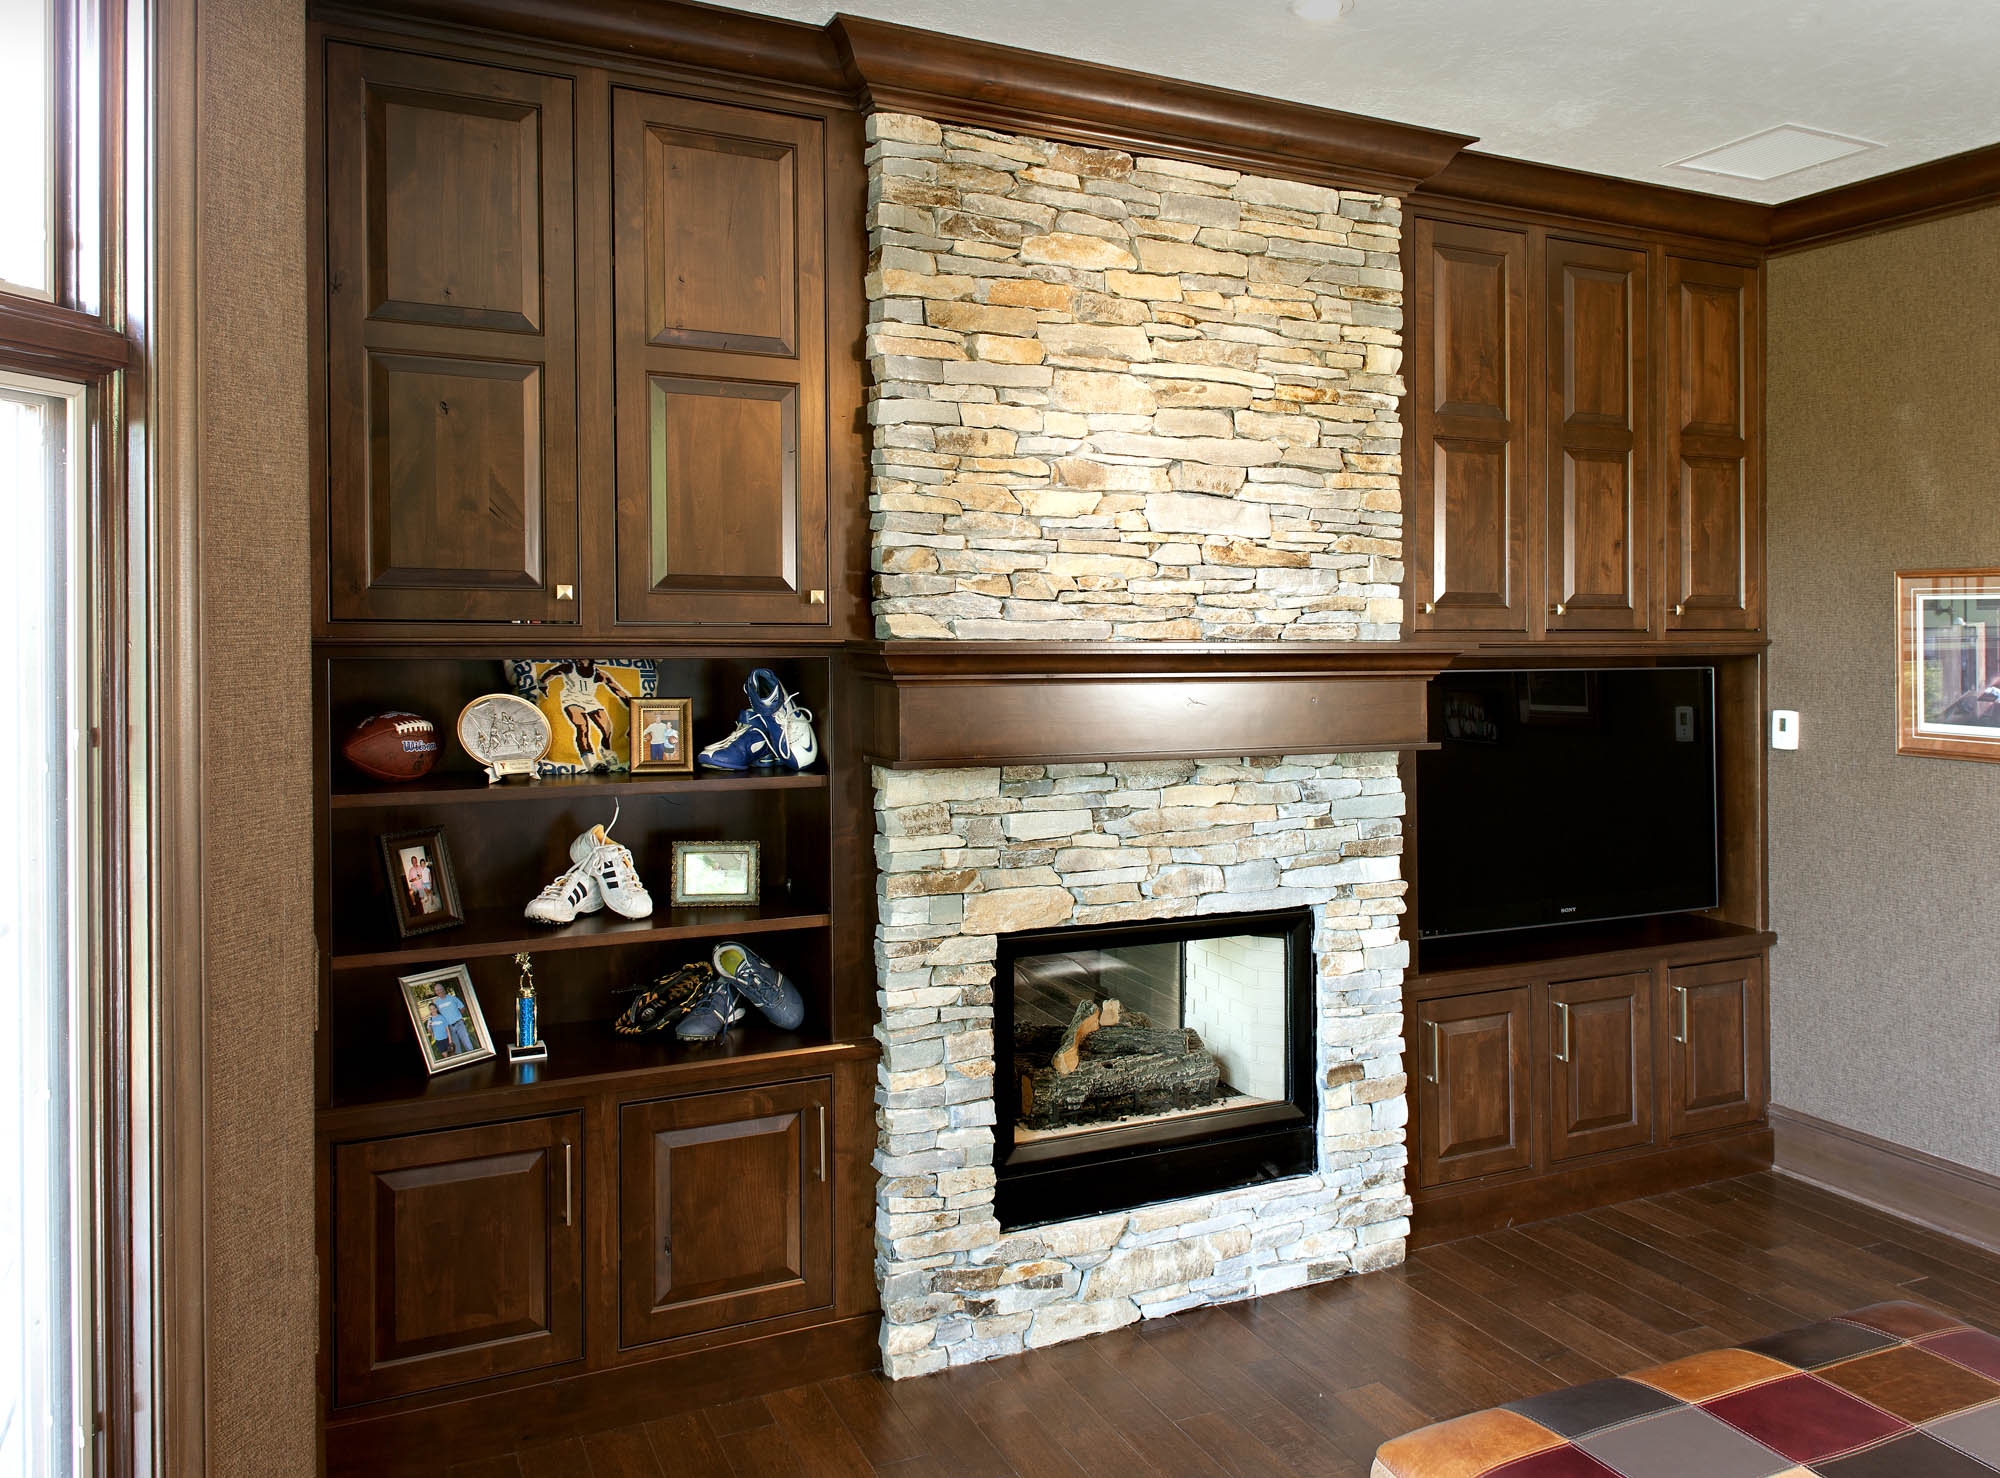 Stained home office fireplace surround in Distressed Coffee with Ebony Glaze by Showplace Cabinetry